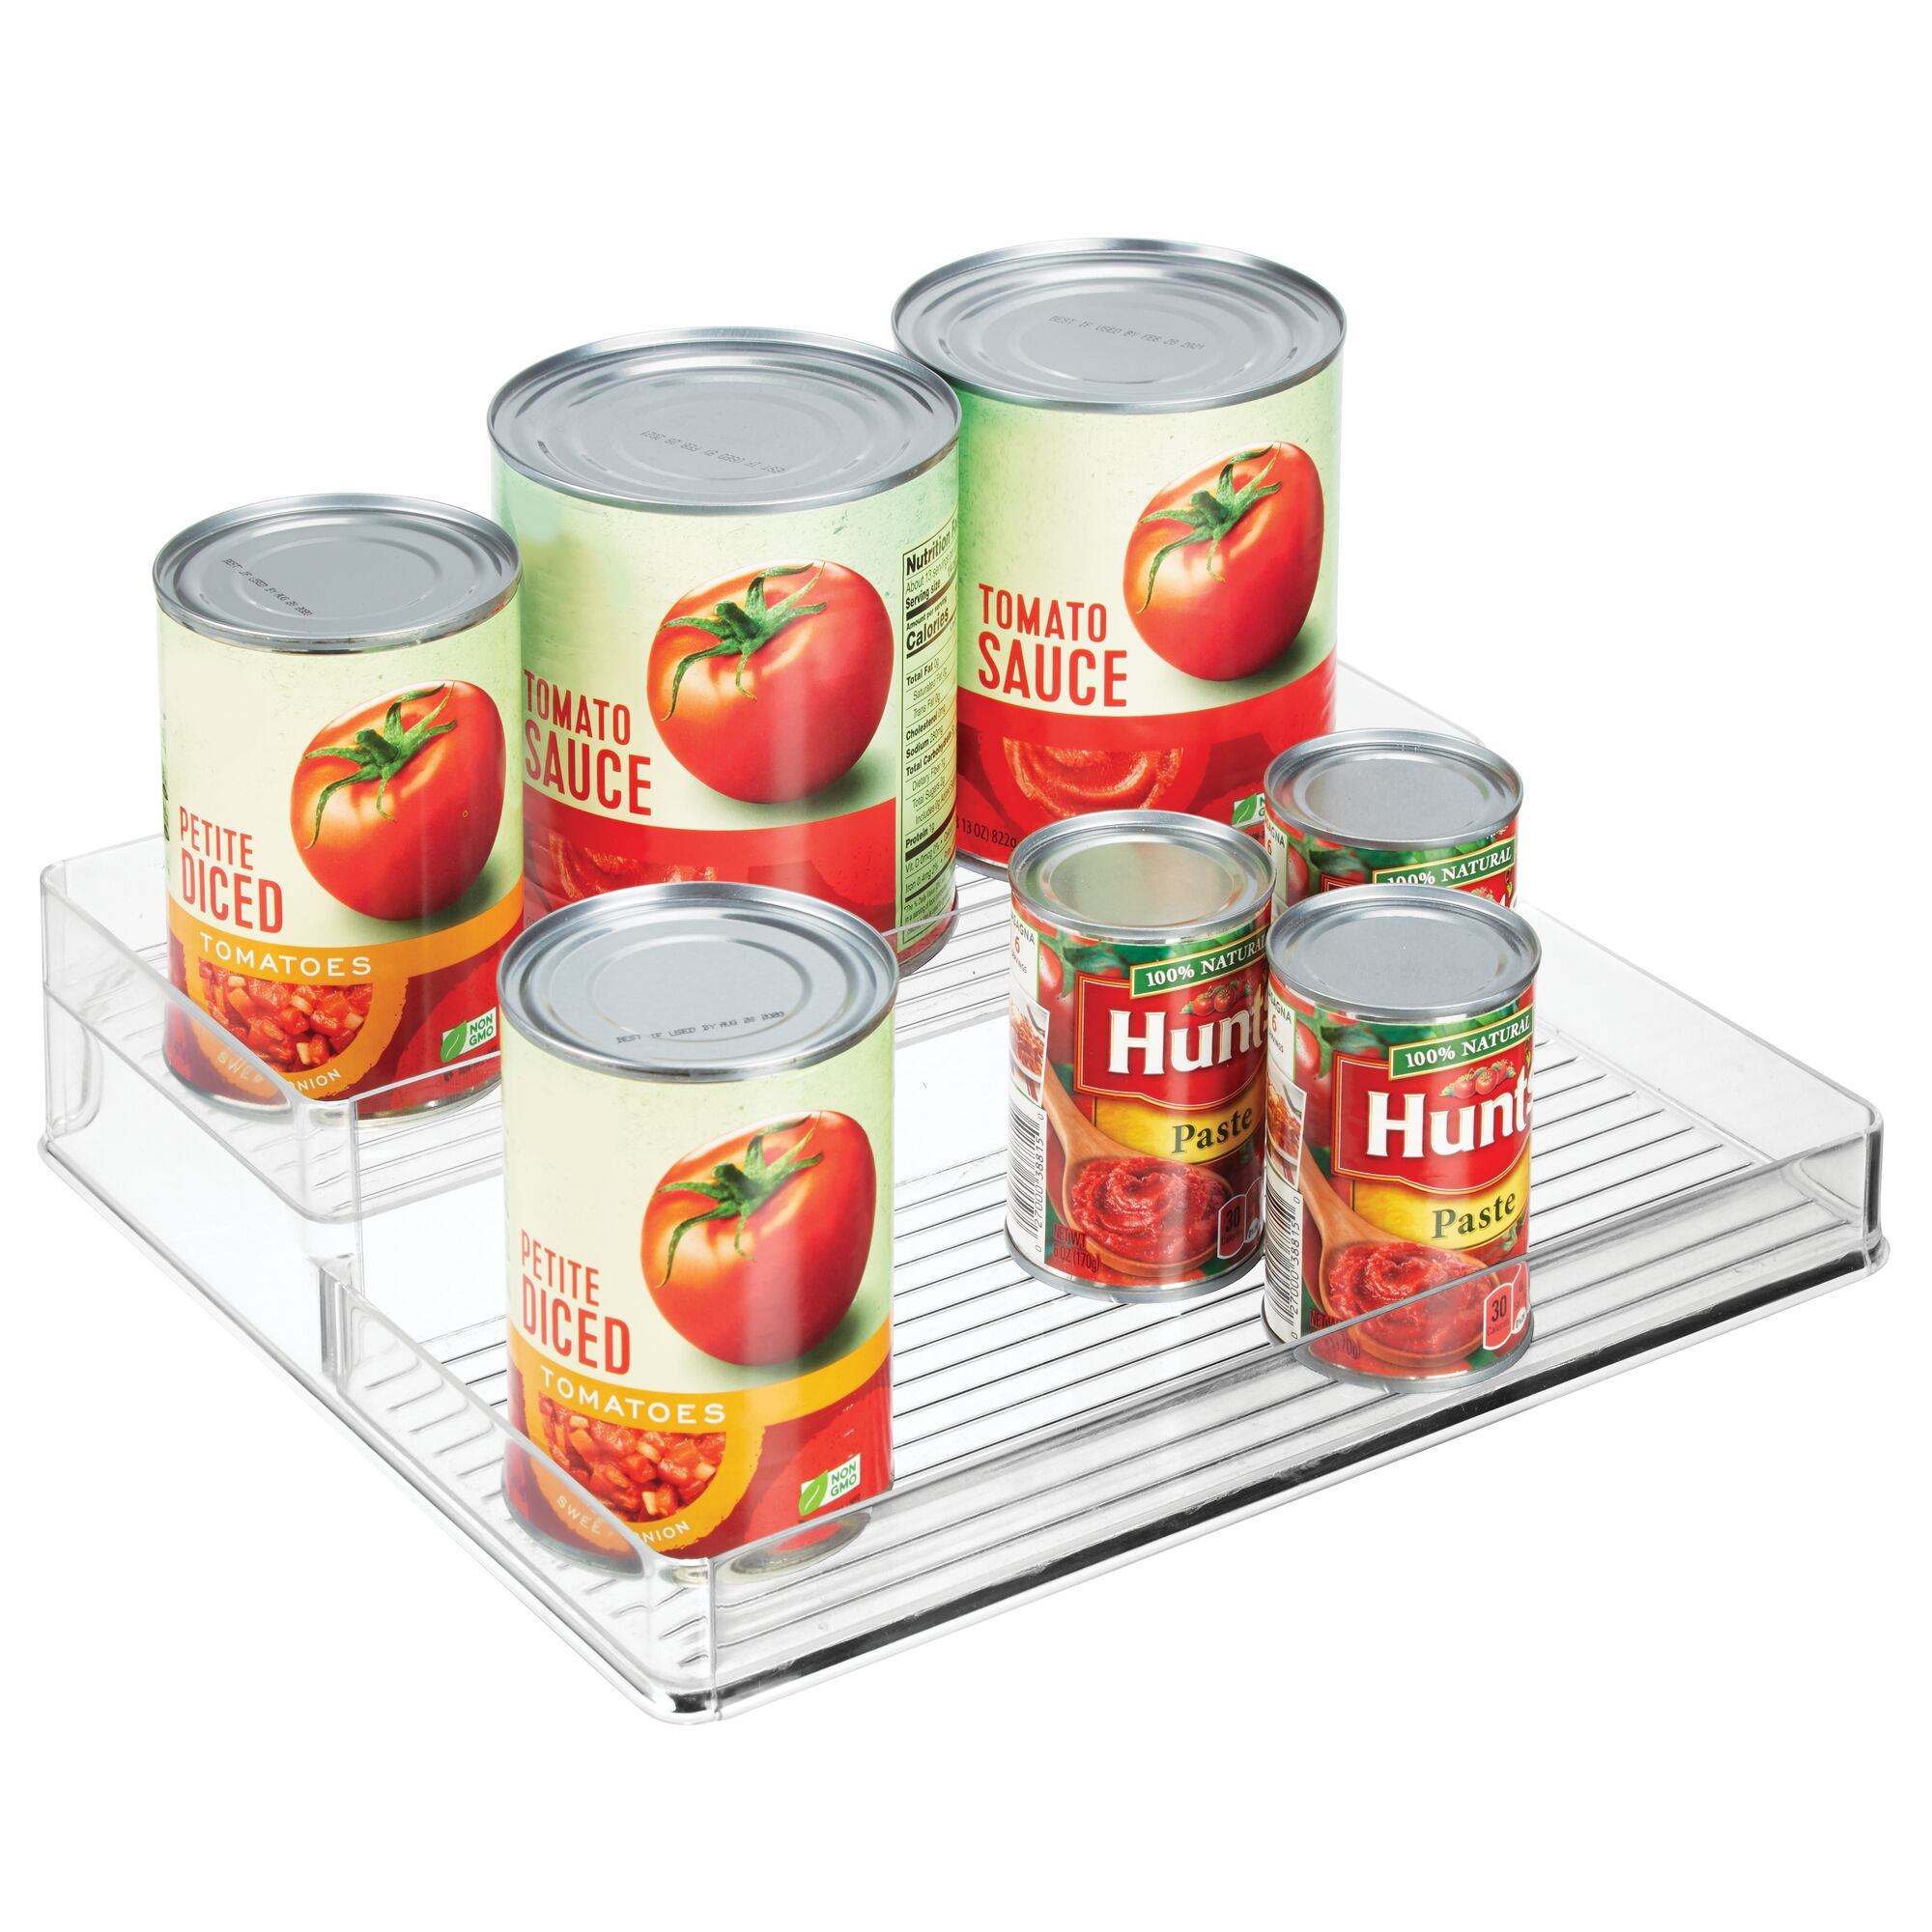 Clear Spice Rack mDesign Plastic Kitchen Tiered Food Storage Shelves 2 Levels